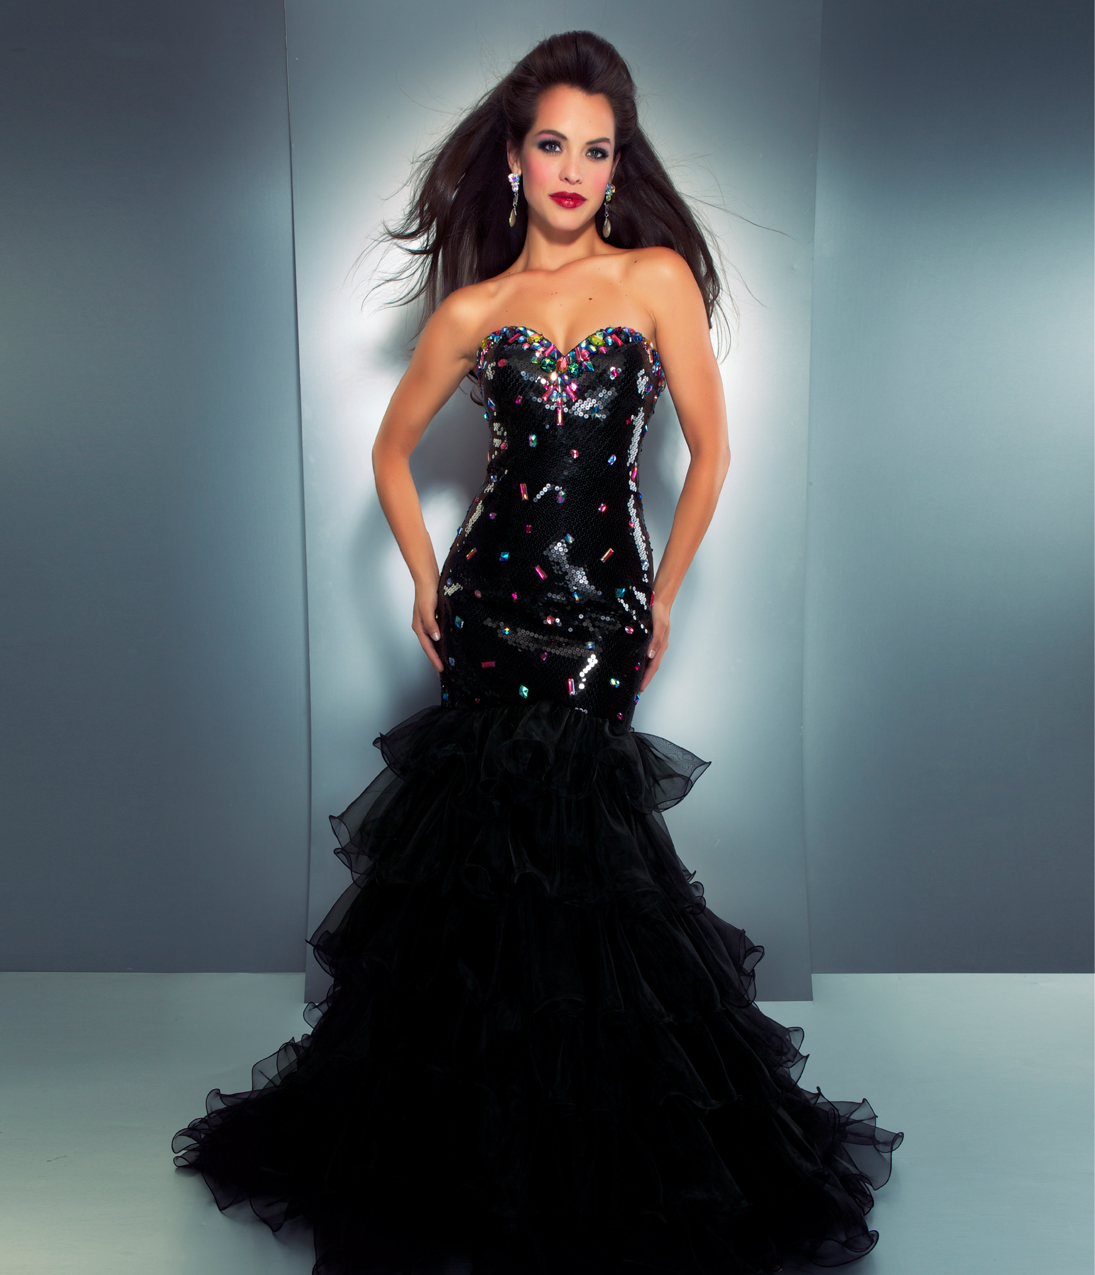 plus size quinceanera dresses beneath $100